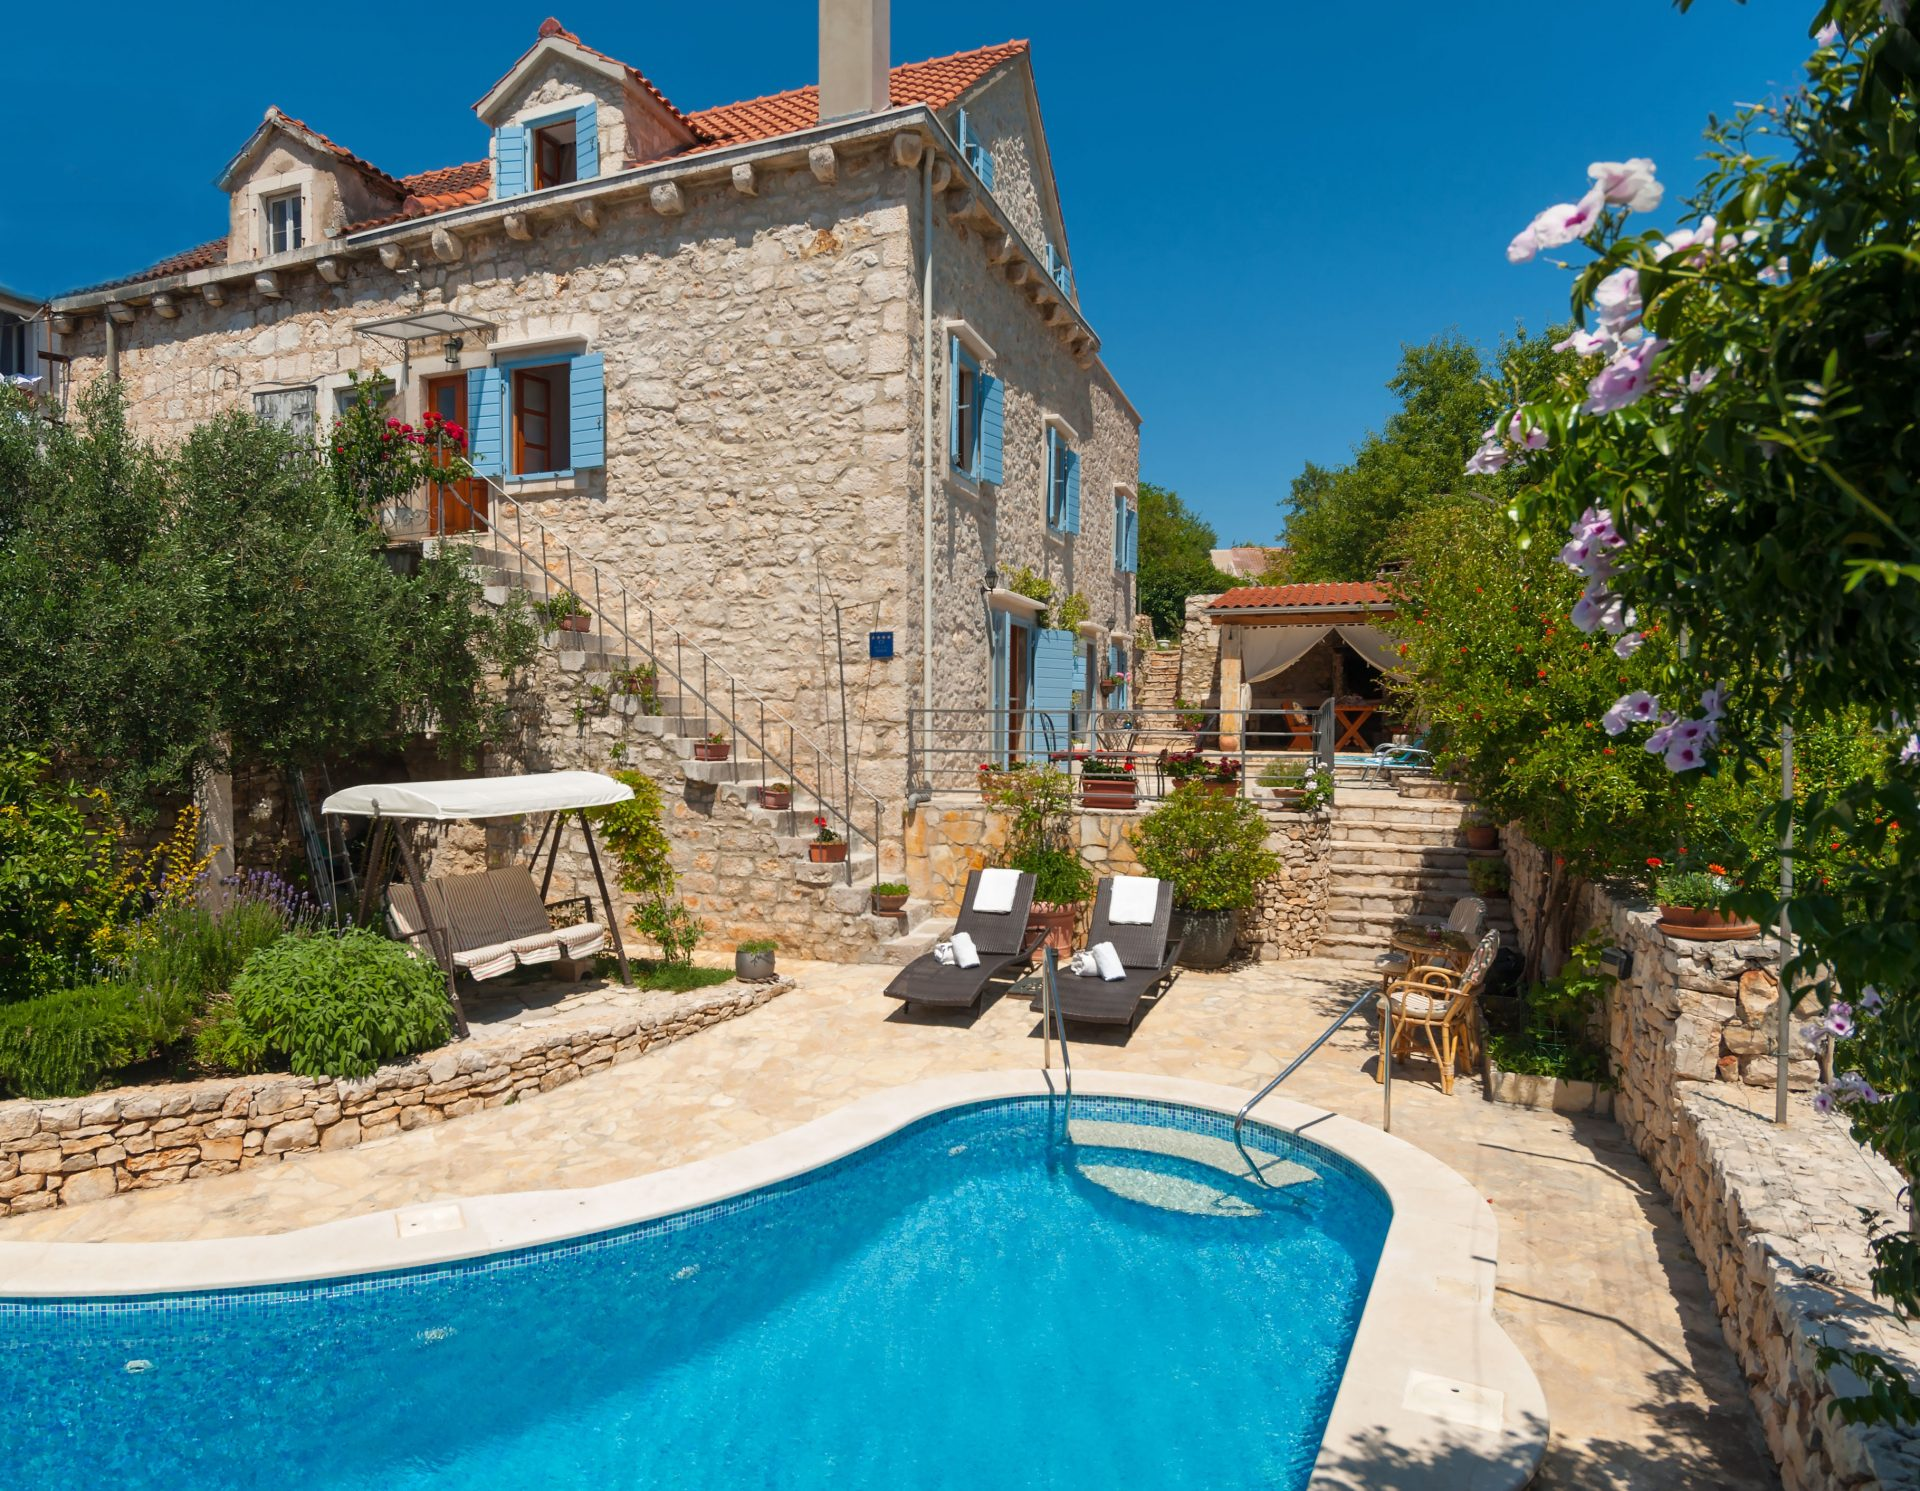 villa-vicina-orvasaccommodation